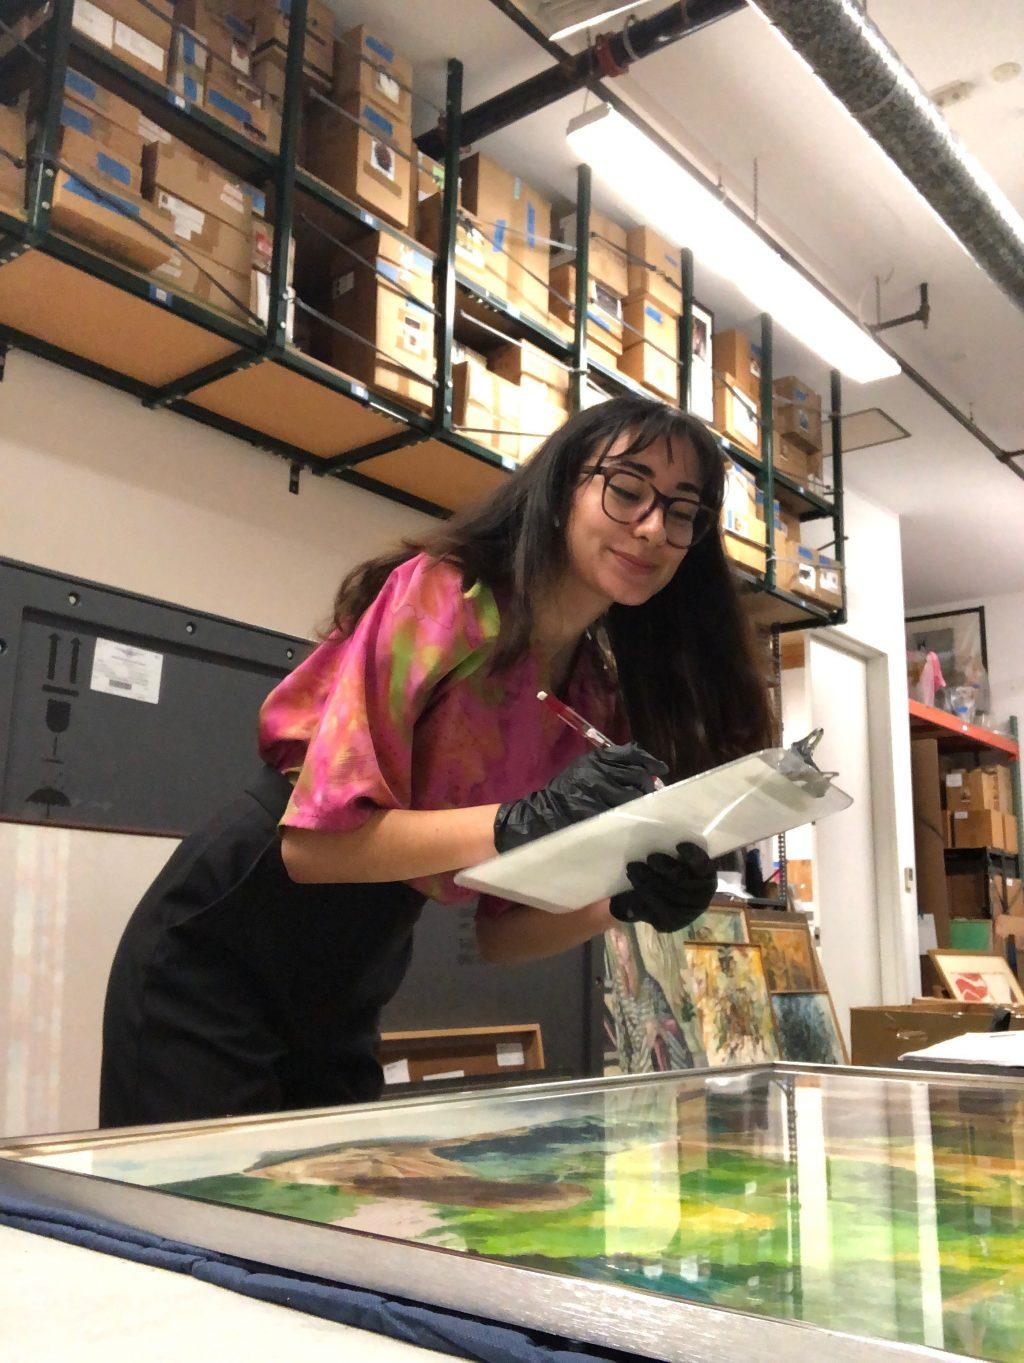 Campbell writes down notes on a painting during her internship in July 2019 at the Long Beach Museum of Art. Campbell said she learned a lot about museum work and local artists through her jobs at both the Long Beach Museum of Art and the Weisman Museum of Art on the Malibu campus.